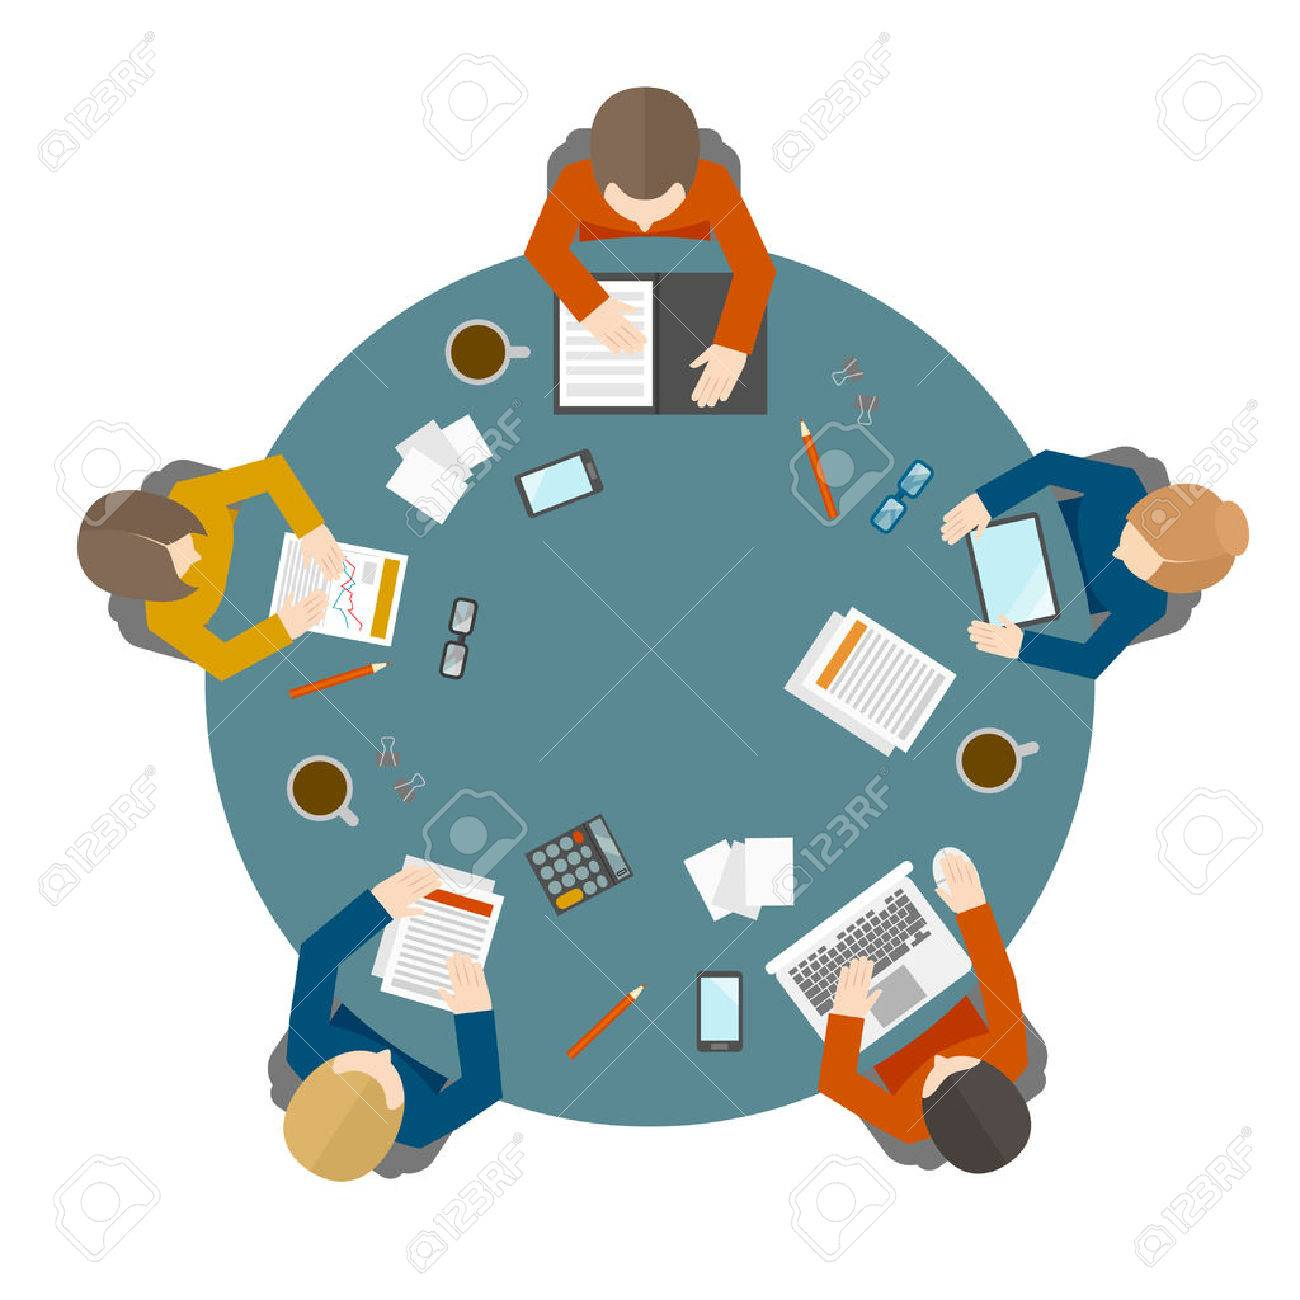 Round table meeting icon - Flat Style Office Workers Business Management Meeting And Brainstorming On The Round Table In Top View